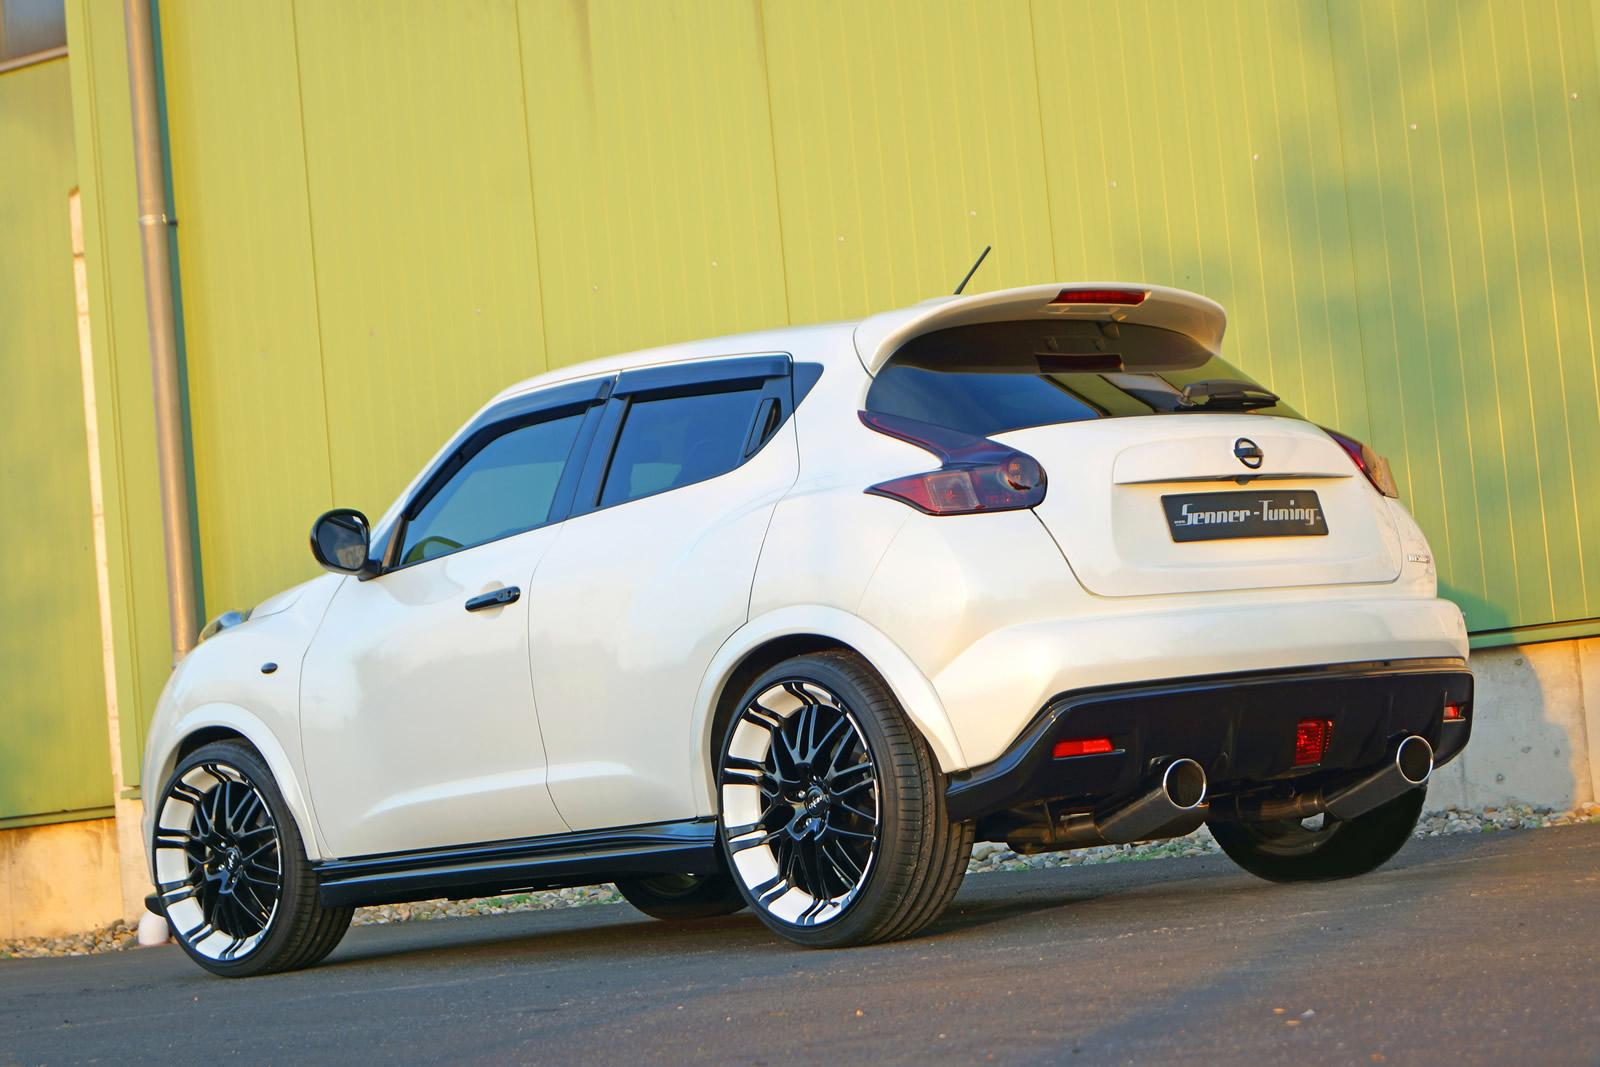 nissan juke nismo by senner tuning has 225 hp autoevolution. Black Bedroom Furniture Sets. Home Design Ideas